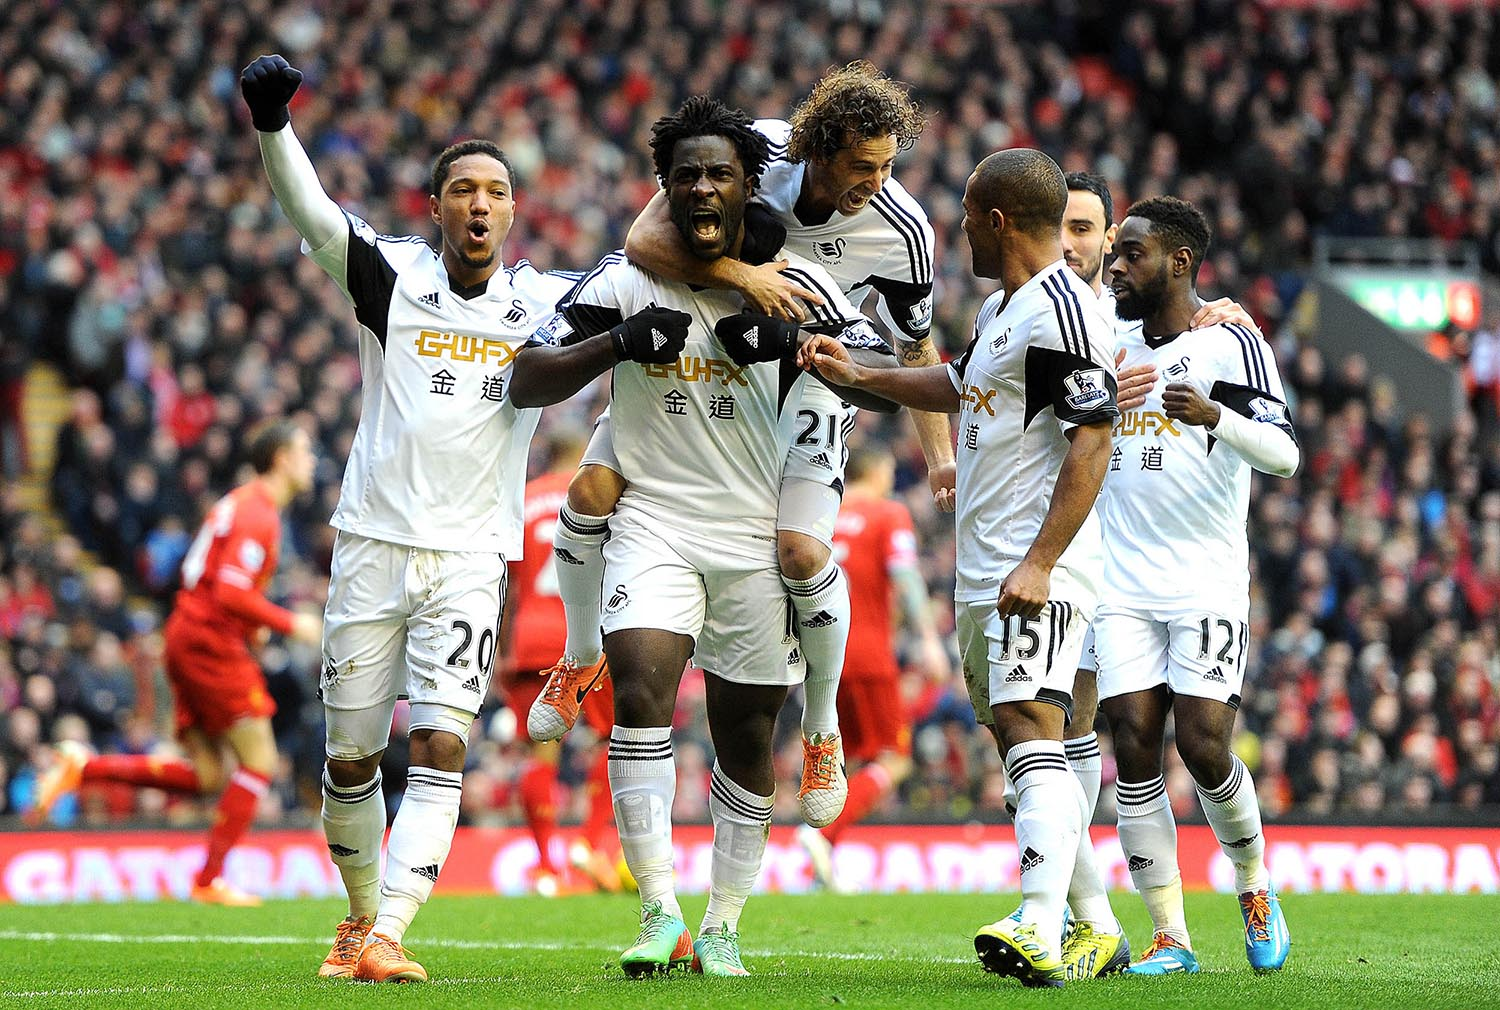 Wilfried Bony of Swansea celebrates scoring